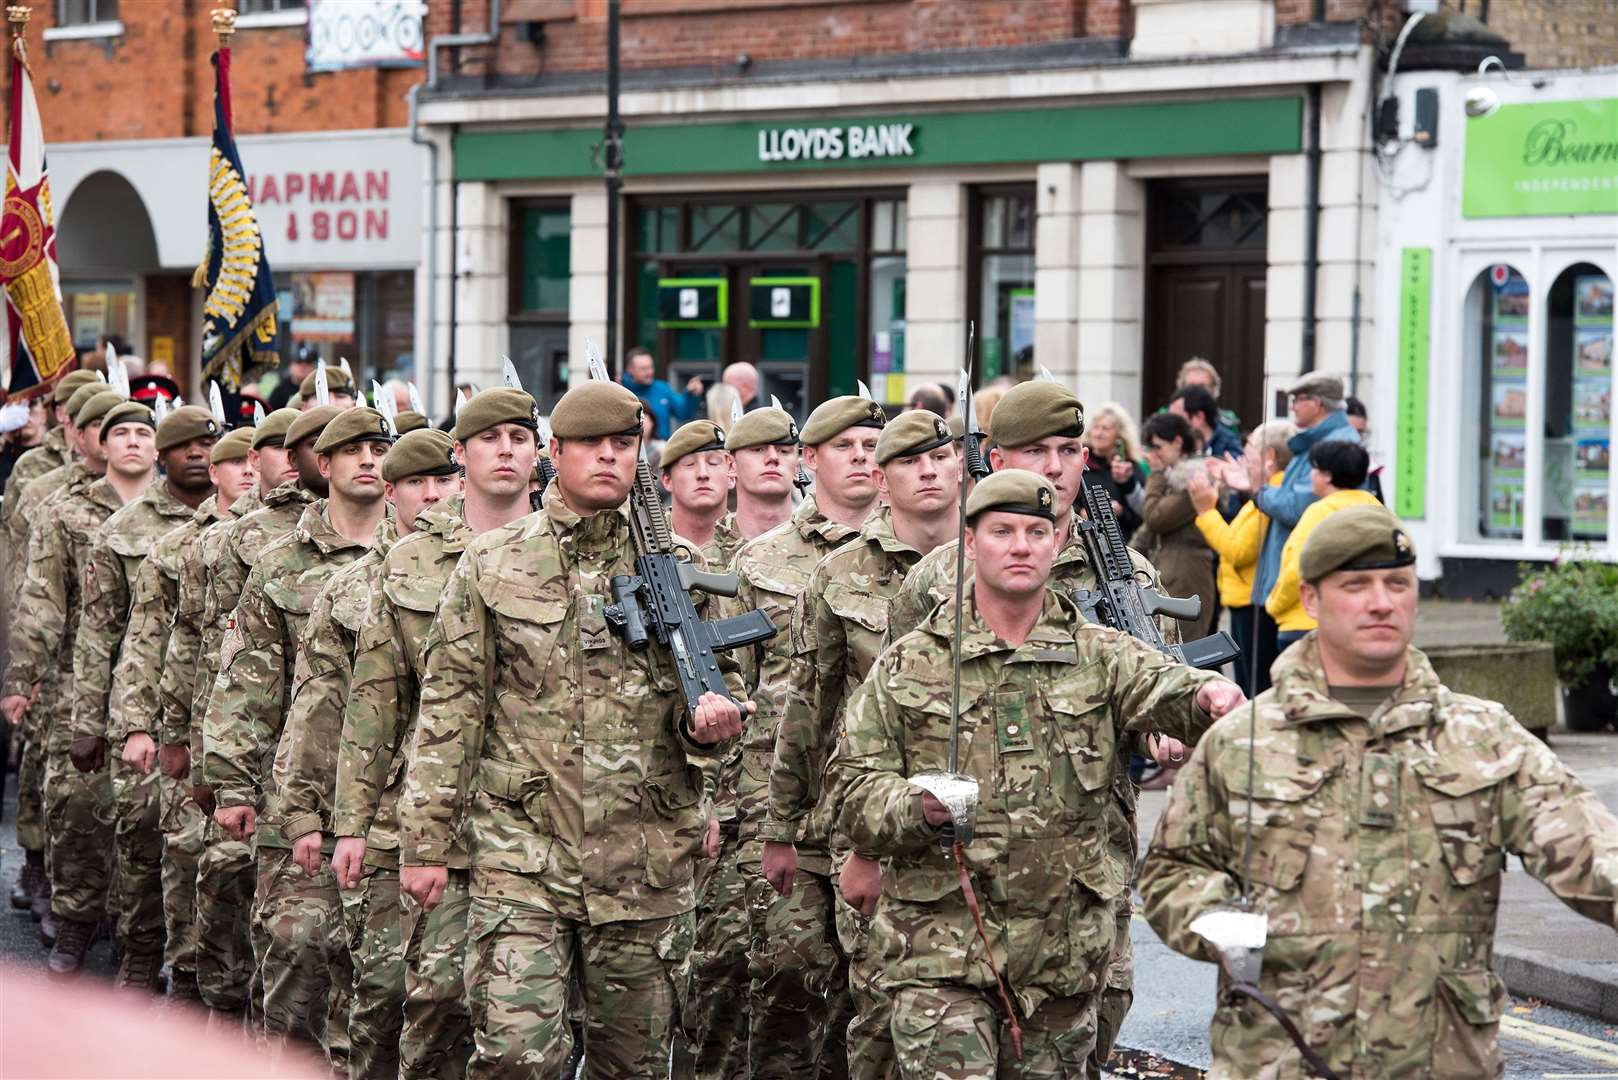 The 1st Battalion of the Royal Anglian Regiment parades along Haverhill High Street. Picture by Mark Westley.